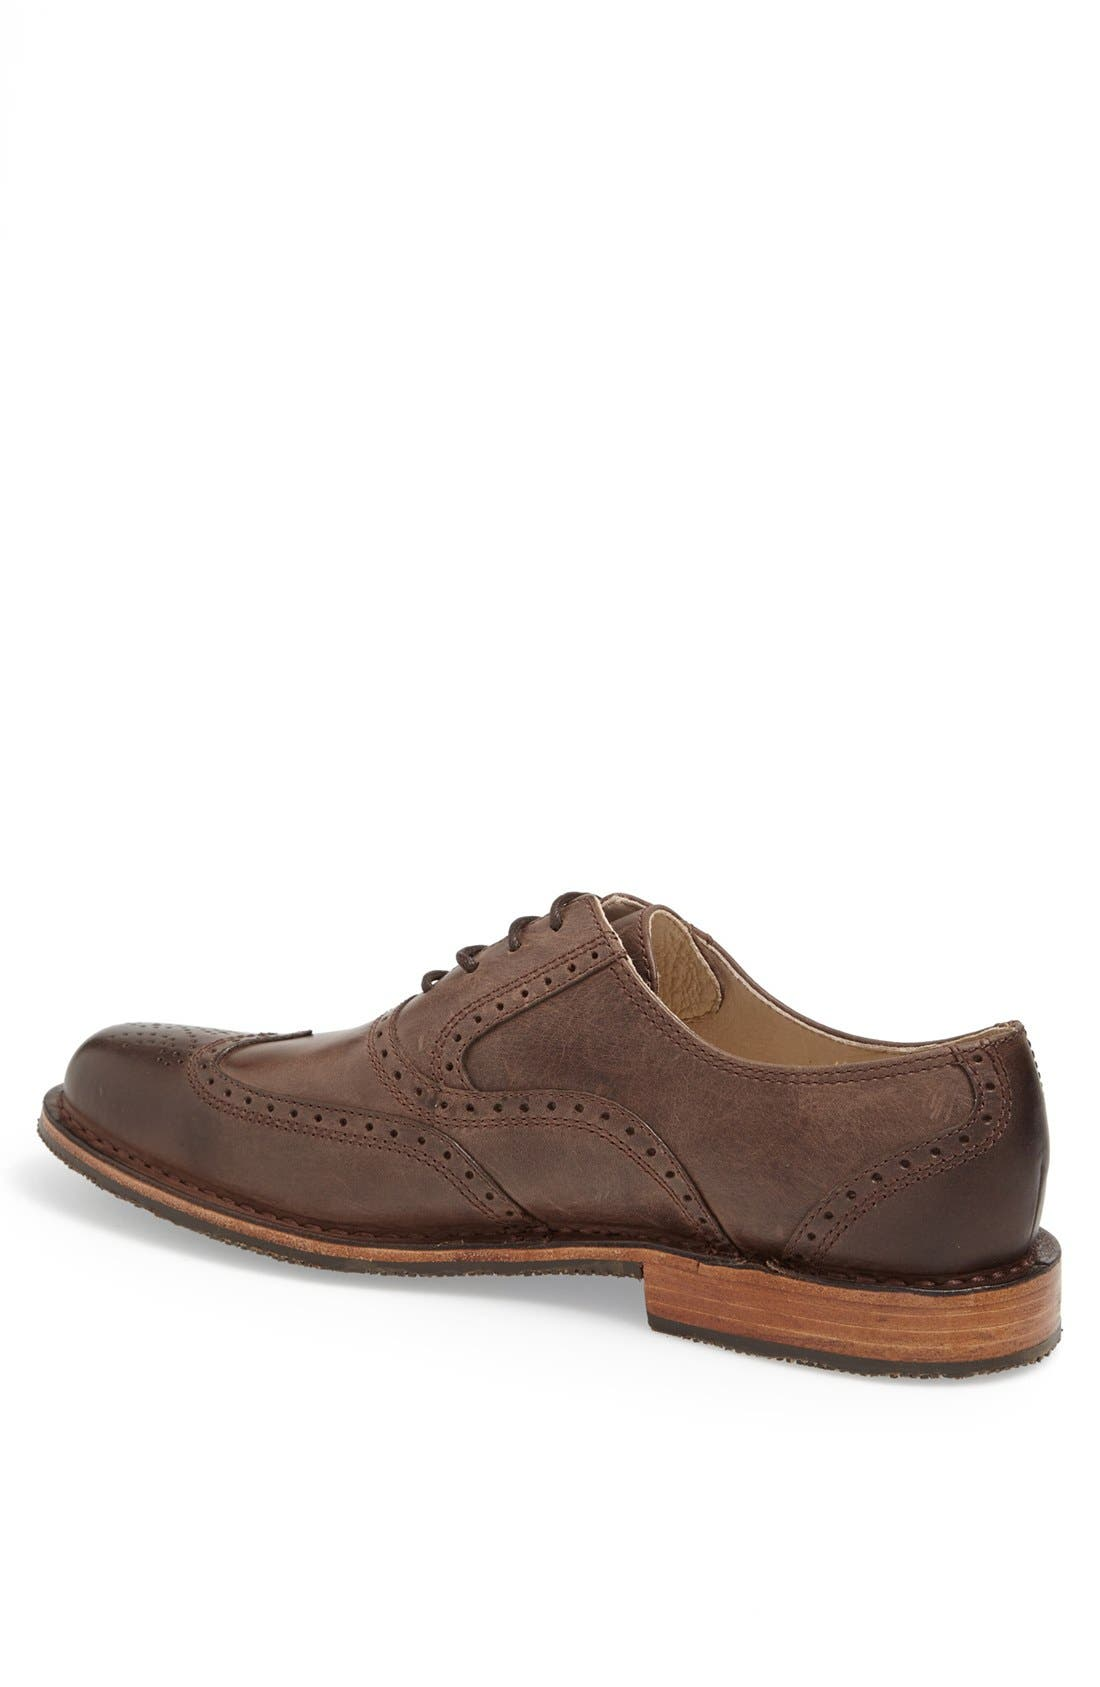 Alternate Image 2  - Sebago 'Brattle' Wingtip Oxford (Online Only)